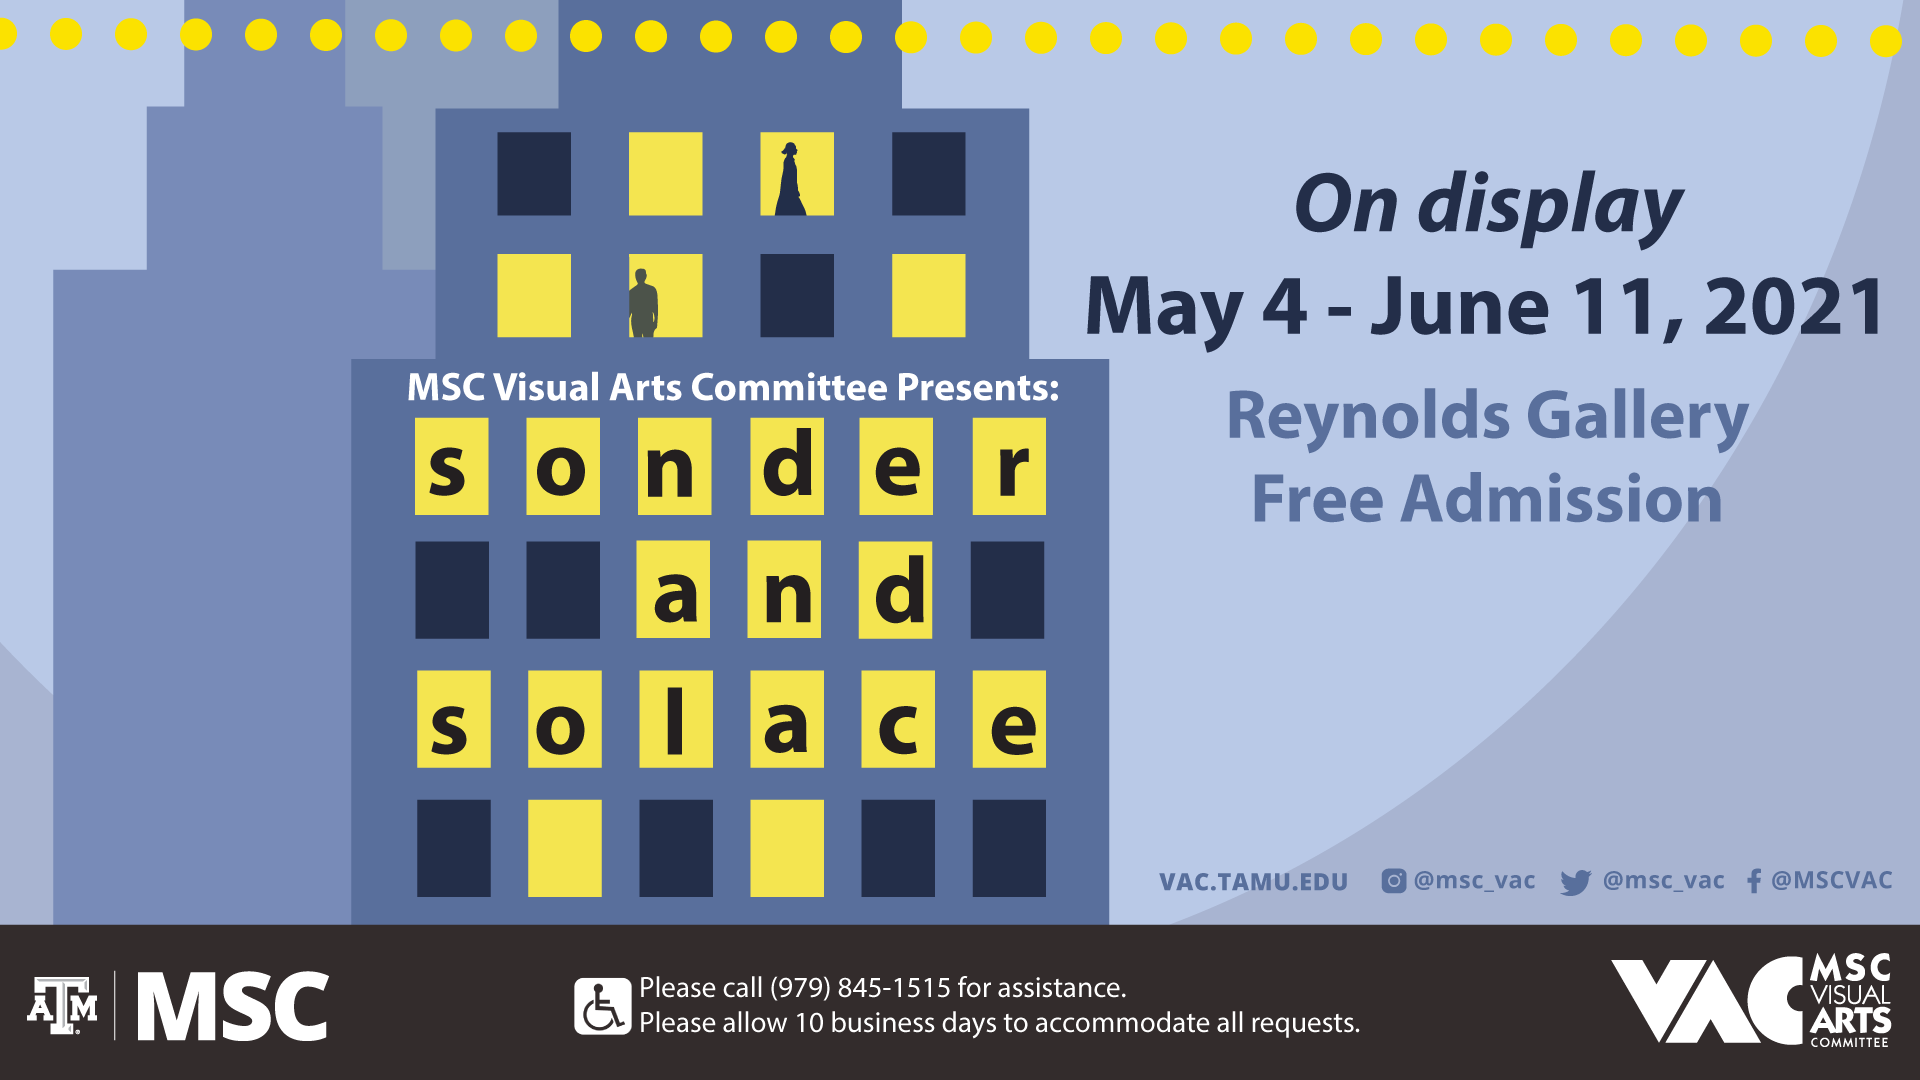 MSC Visual Arts Committee Presents: Sonder and Solace, On display from May 4 to June 11, 2021 at Reynolds Gallery, Free Admission Please call 979.845.1515 for assistance. Website: vac.tamu.edu; Instagram: @msc_vac; Twitter: @msc_vac; Facebook: @MSCVAC; Please allow 10 business days to accommodate all requests.